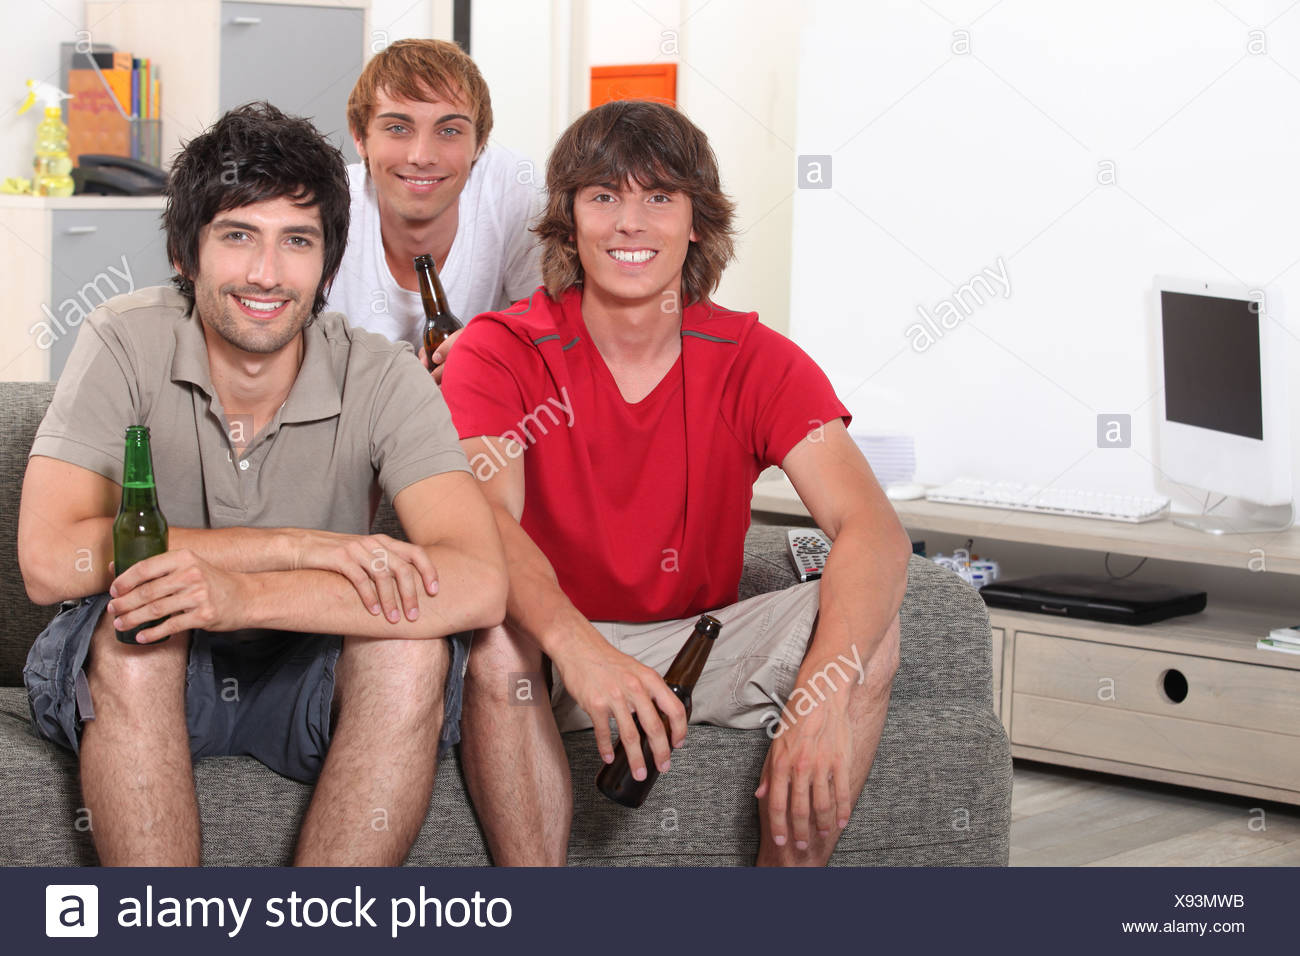 Friends drinking beer at home - Stock Image